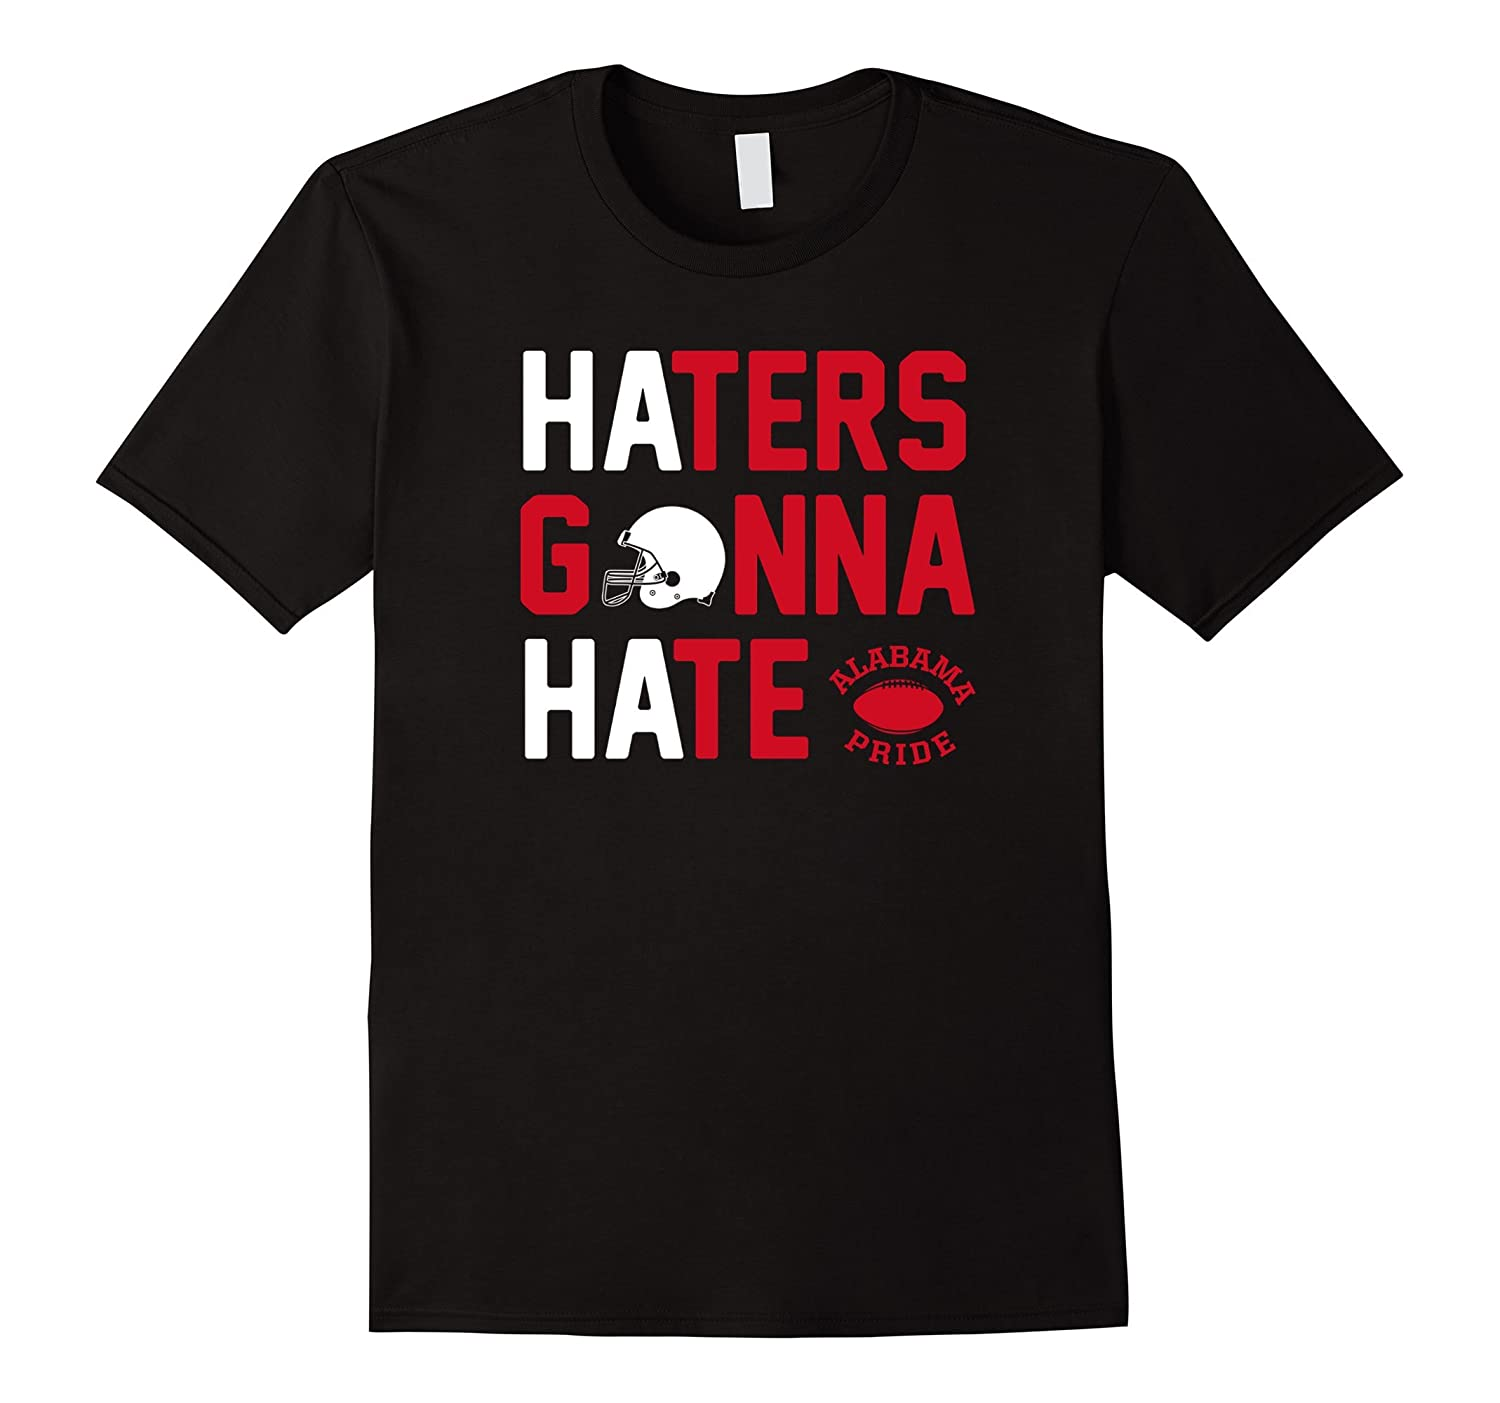 'Bama Pride, HATERS GONNA HATE (College Football T-shirt)-BN